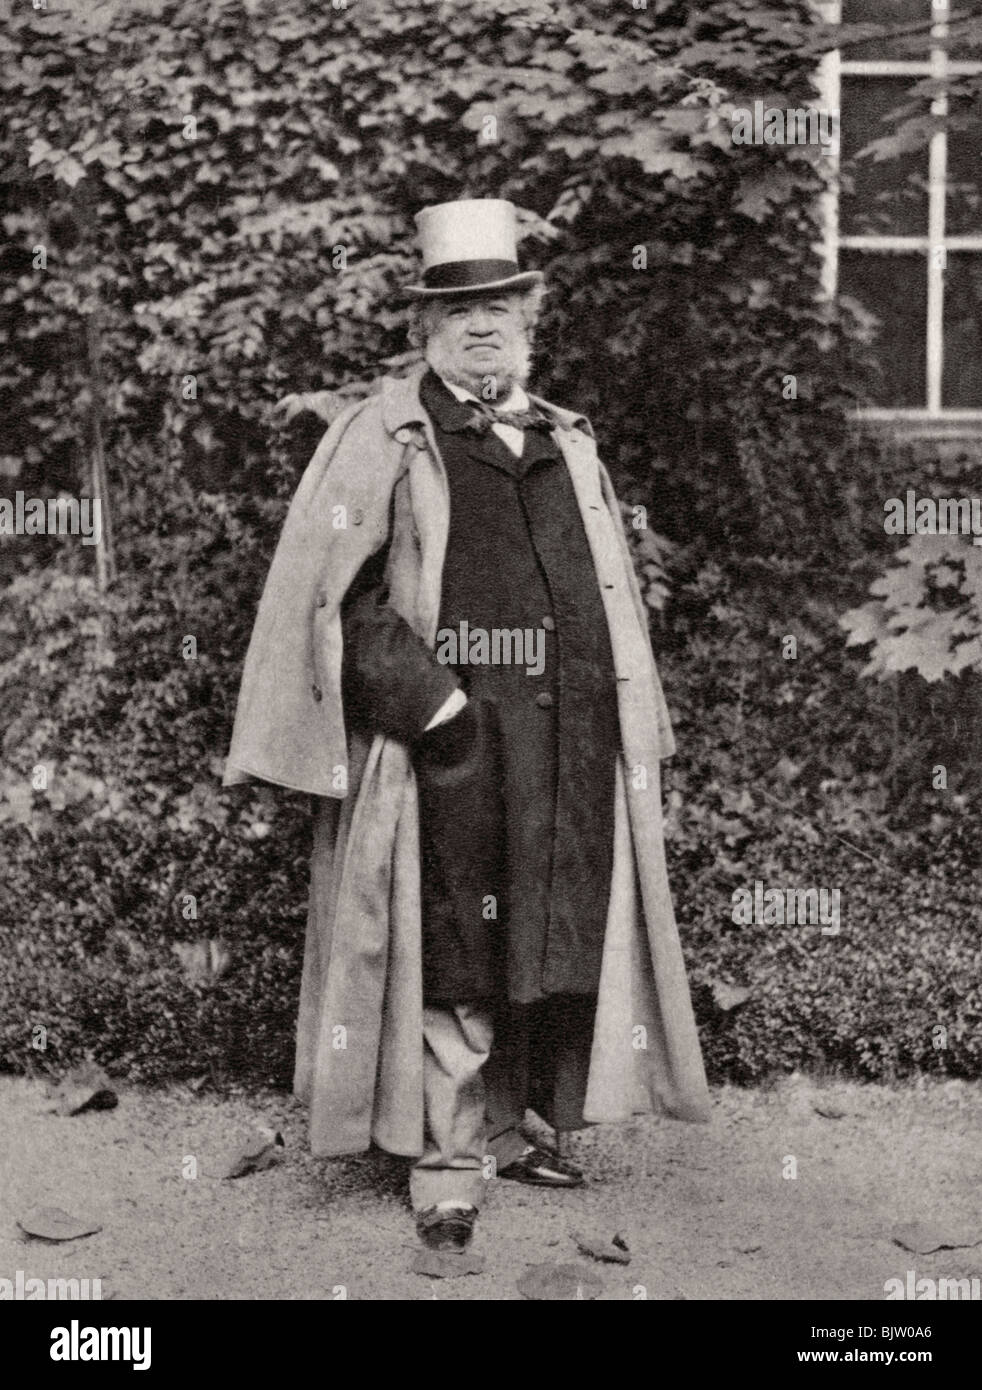 Camille Groult, French art collector, 1903. - Stock Image